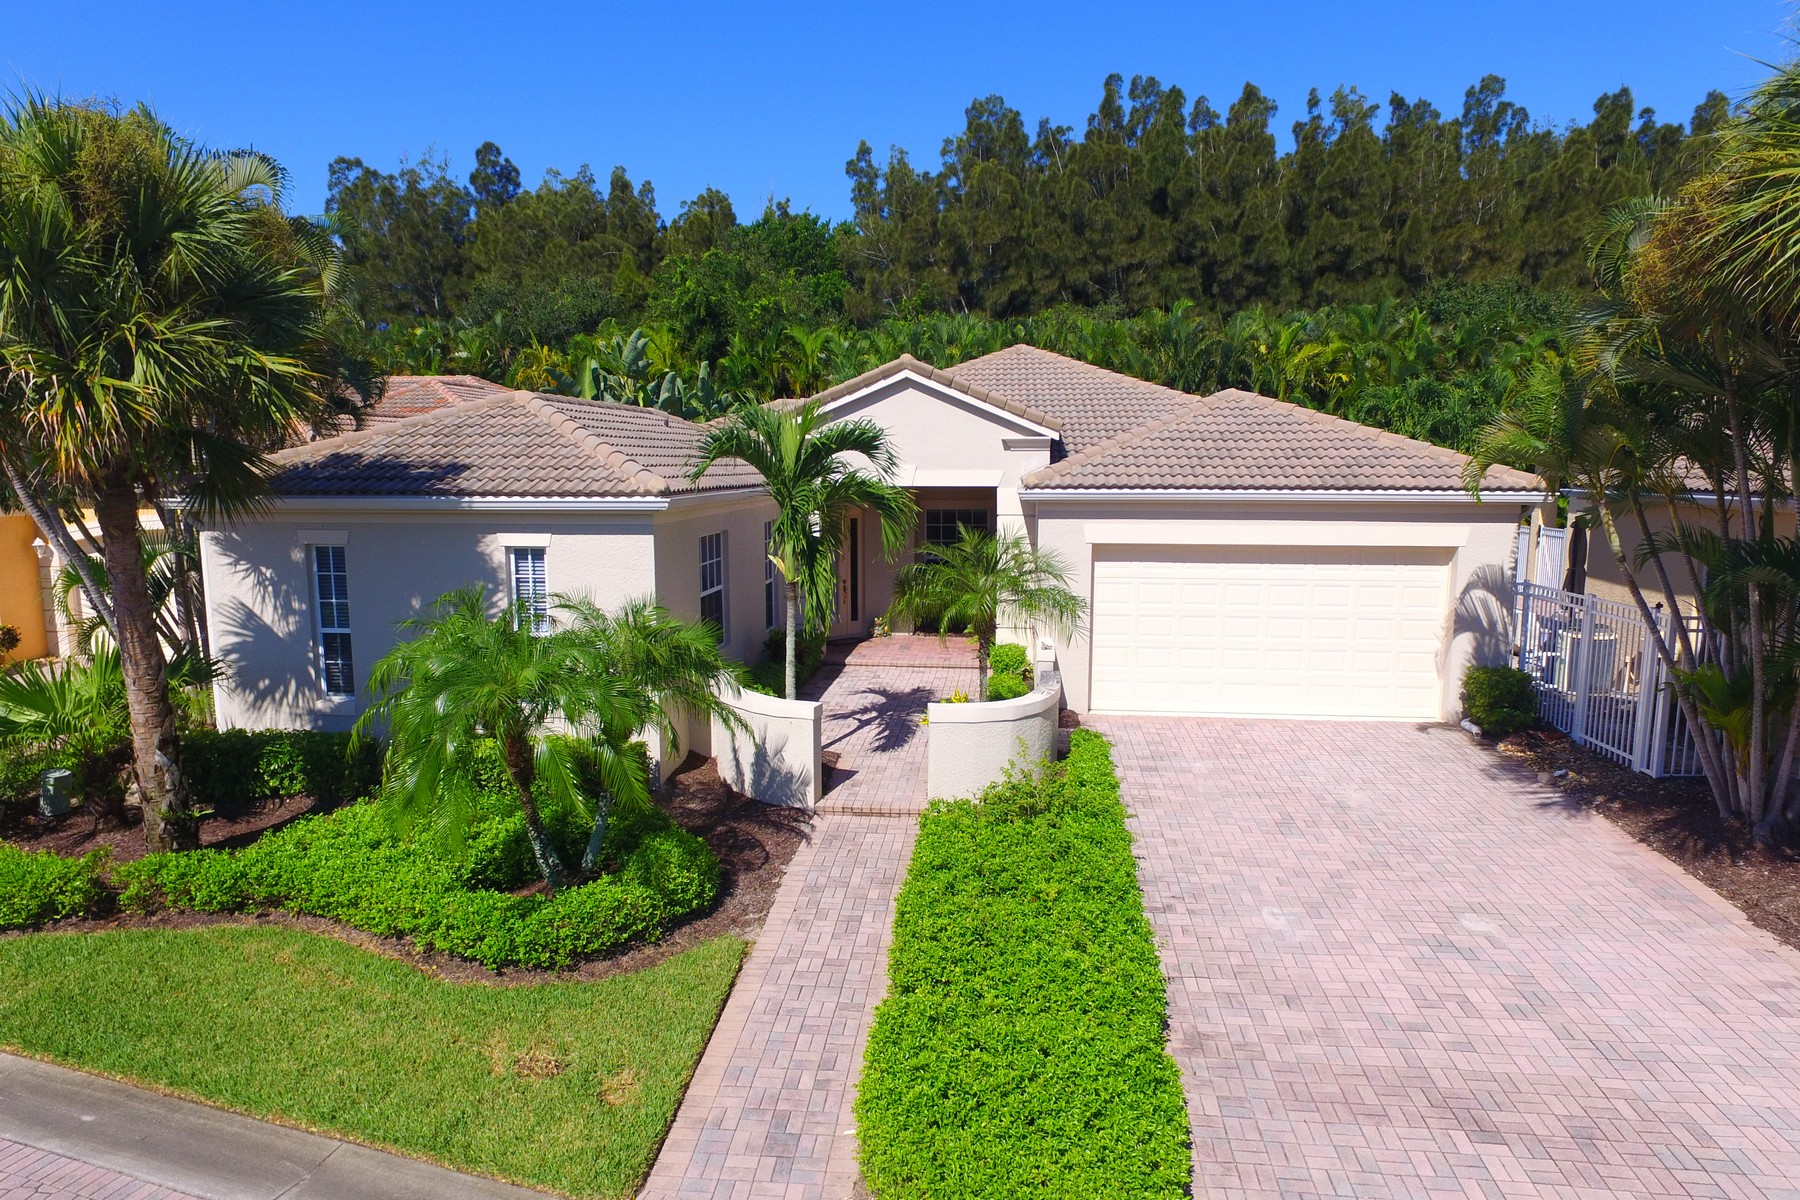 Single Family Homes for Sale at Tropical Island Style Awaits in this Turnkey Home 9575 W Maiden Court Vero Beach, Florida 32963 United States